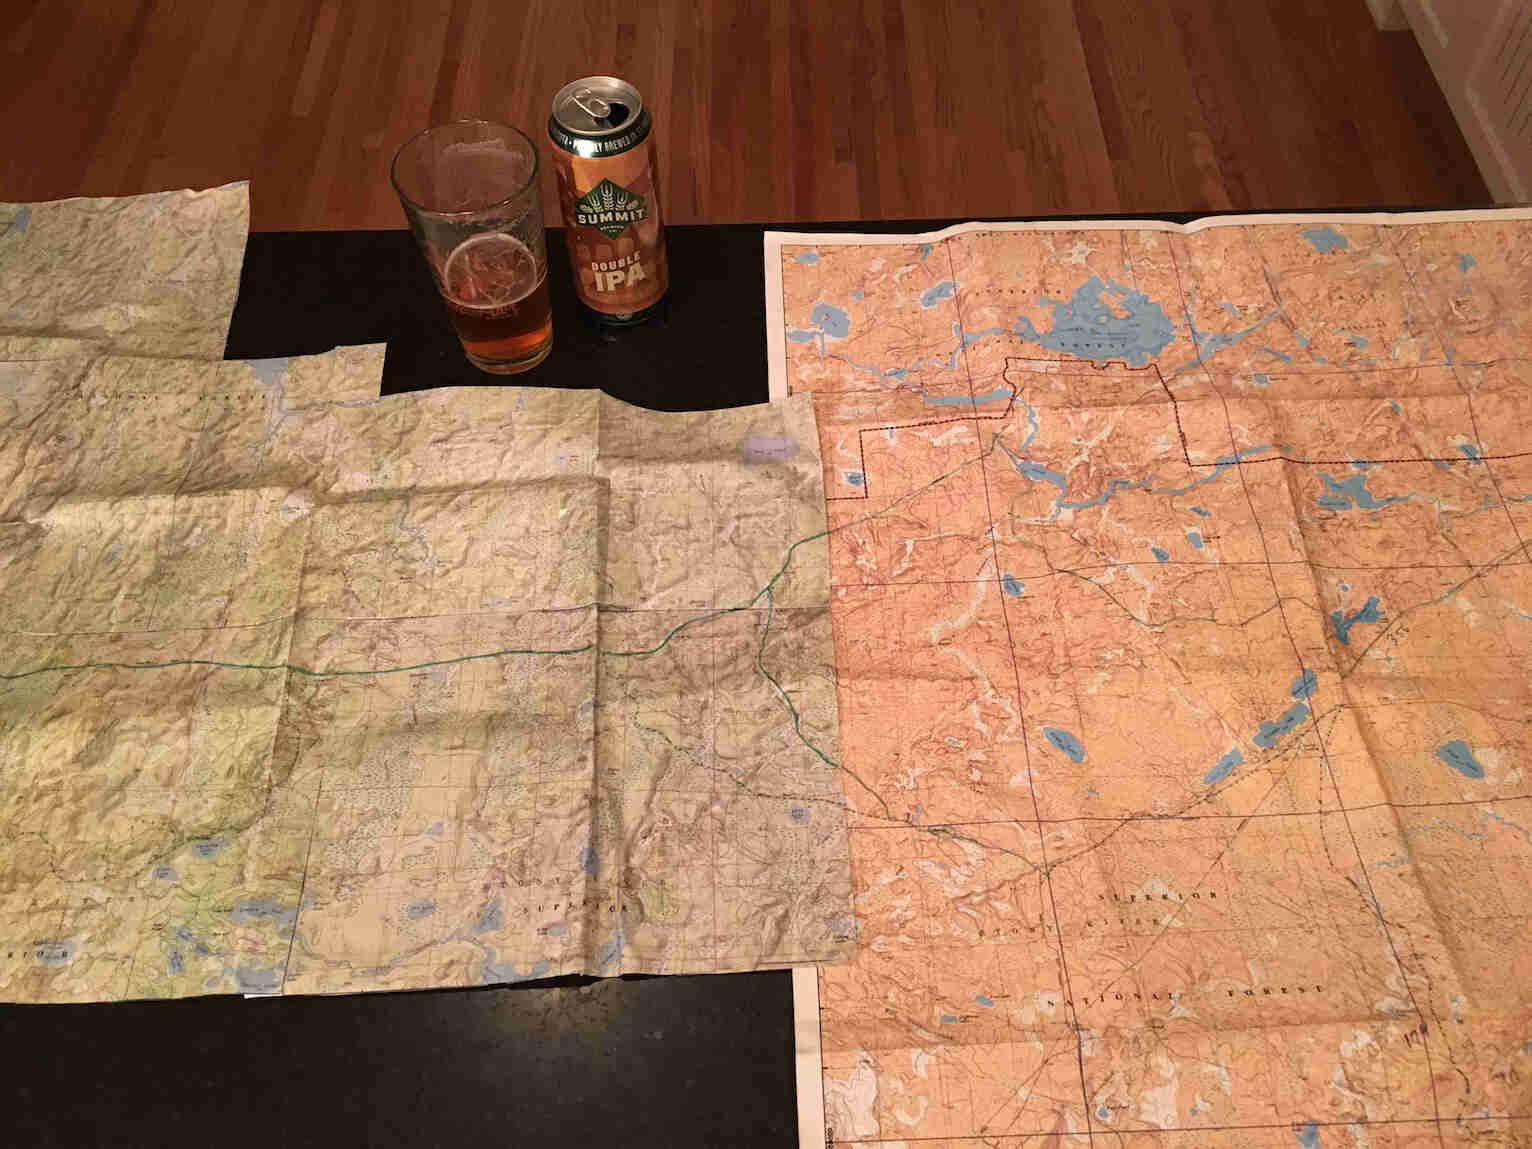 Downward view of two maps, a glass of beer and can, on a table top